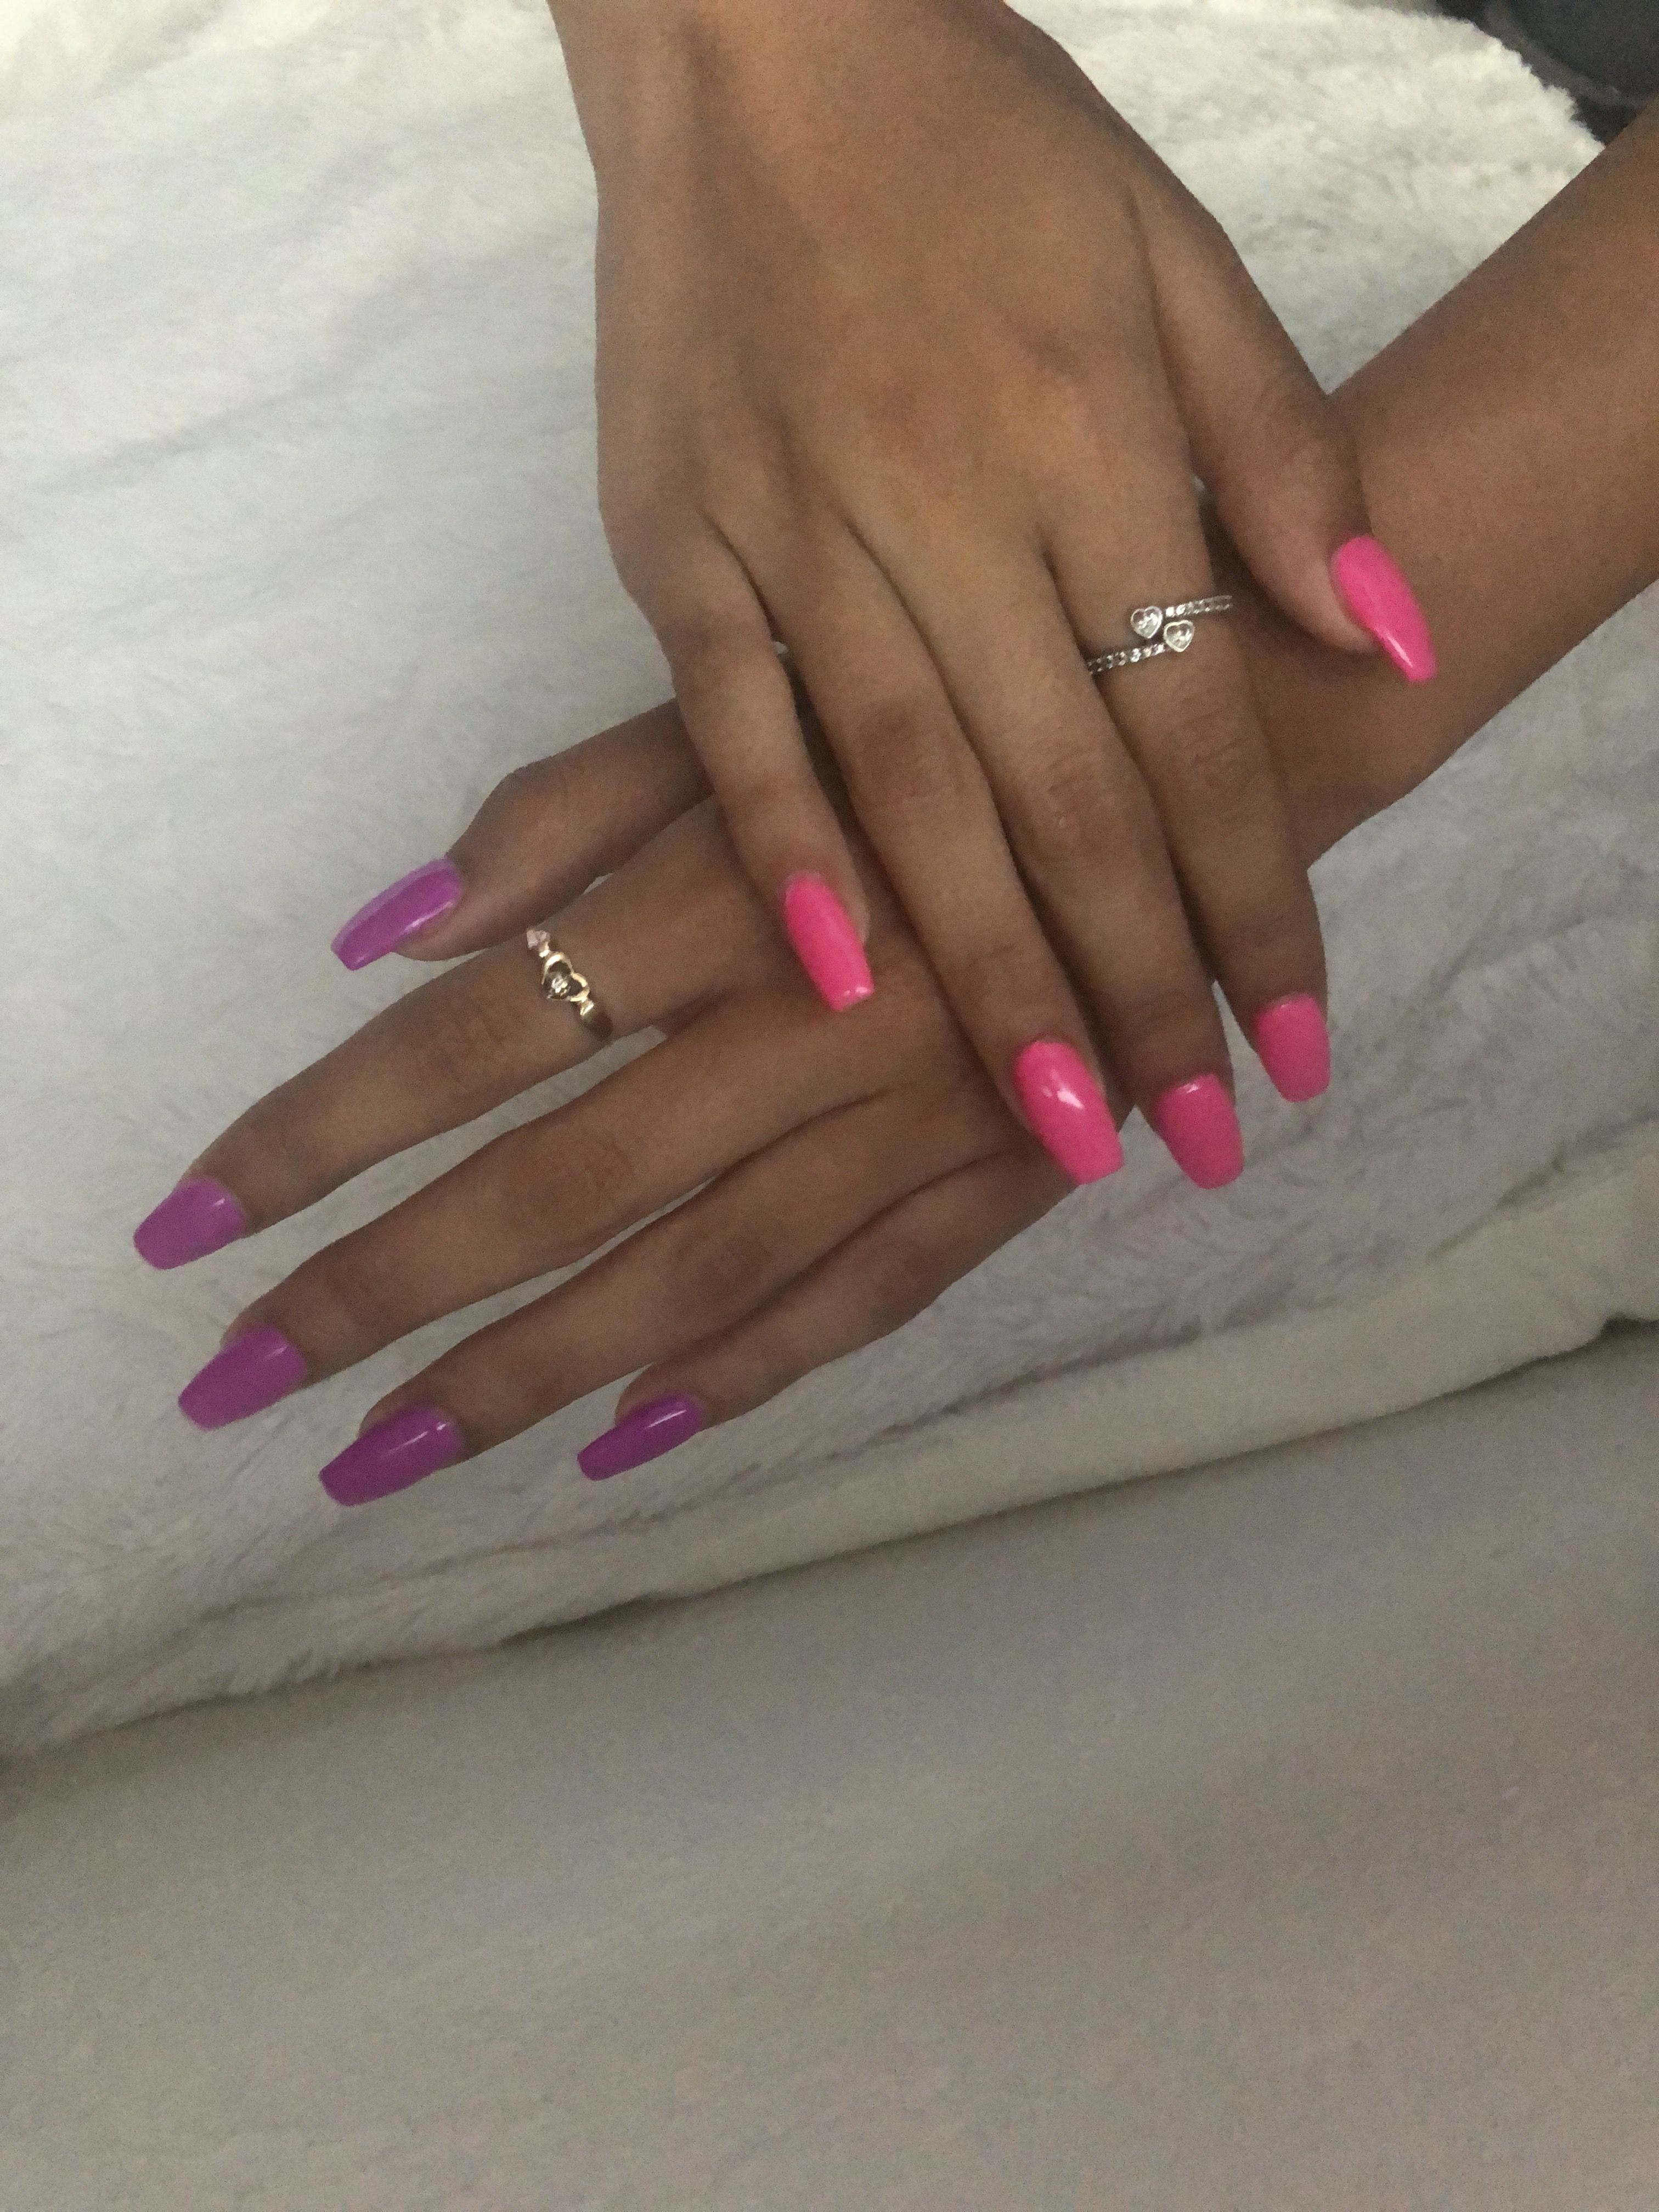 Nails Pink Nails Purple Nails Two Different Colored Nails Acrylic Nails Acrylic Nail Pattern Acrylic Nails Nails Color